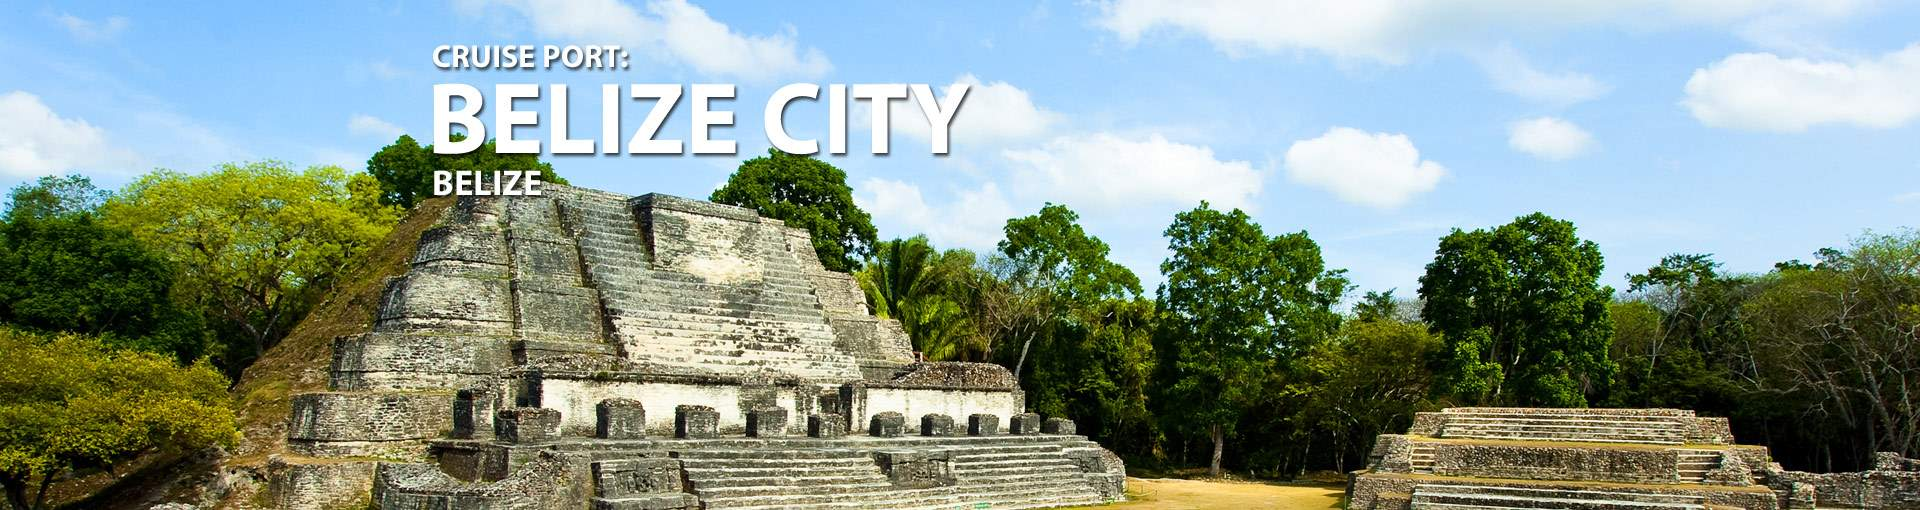 Cruises to Belize City, Belize